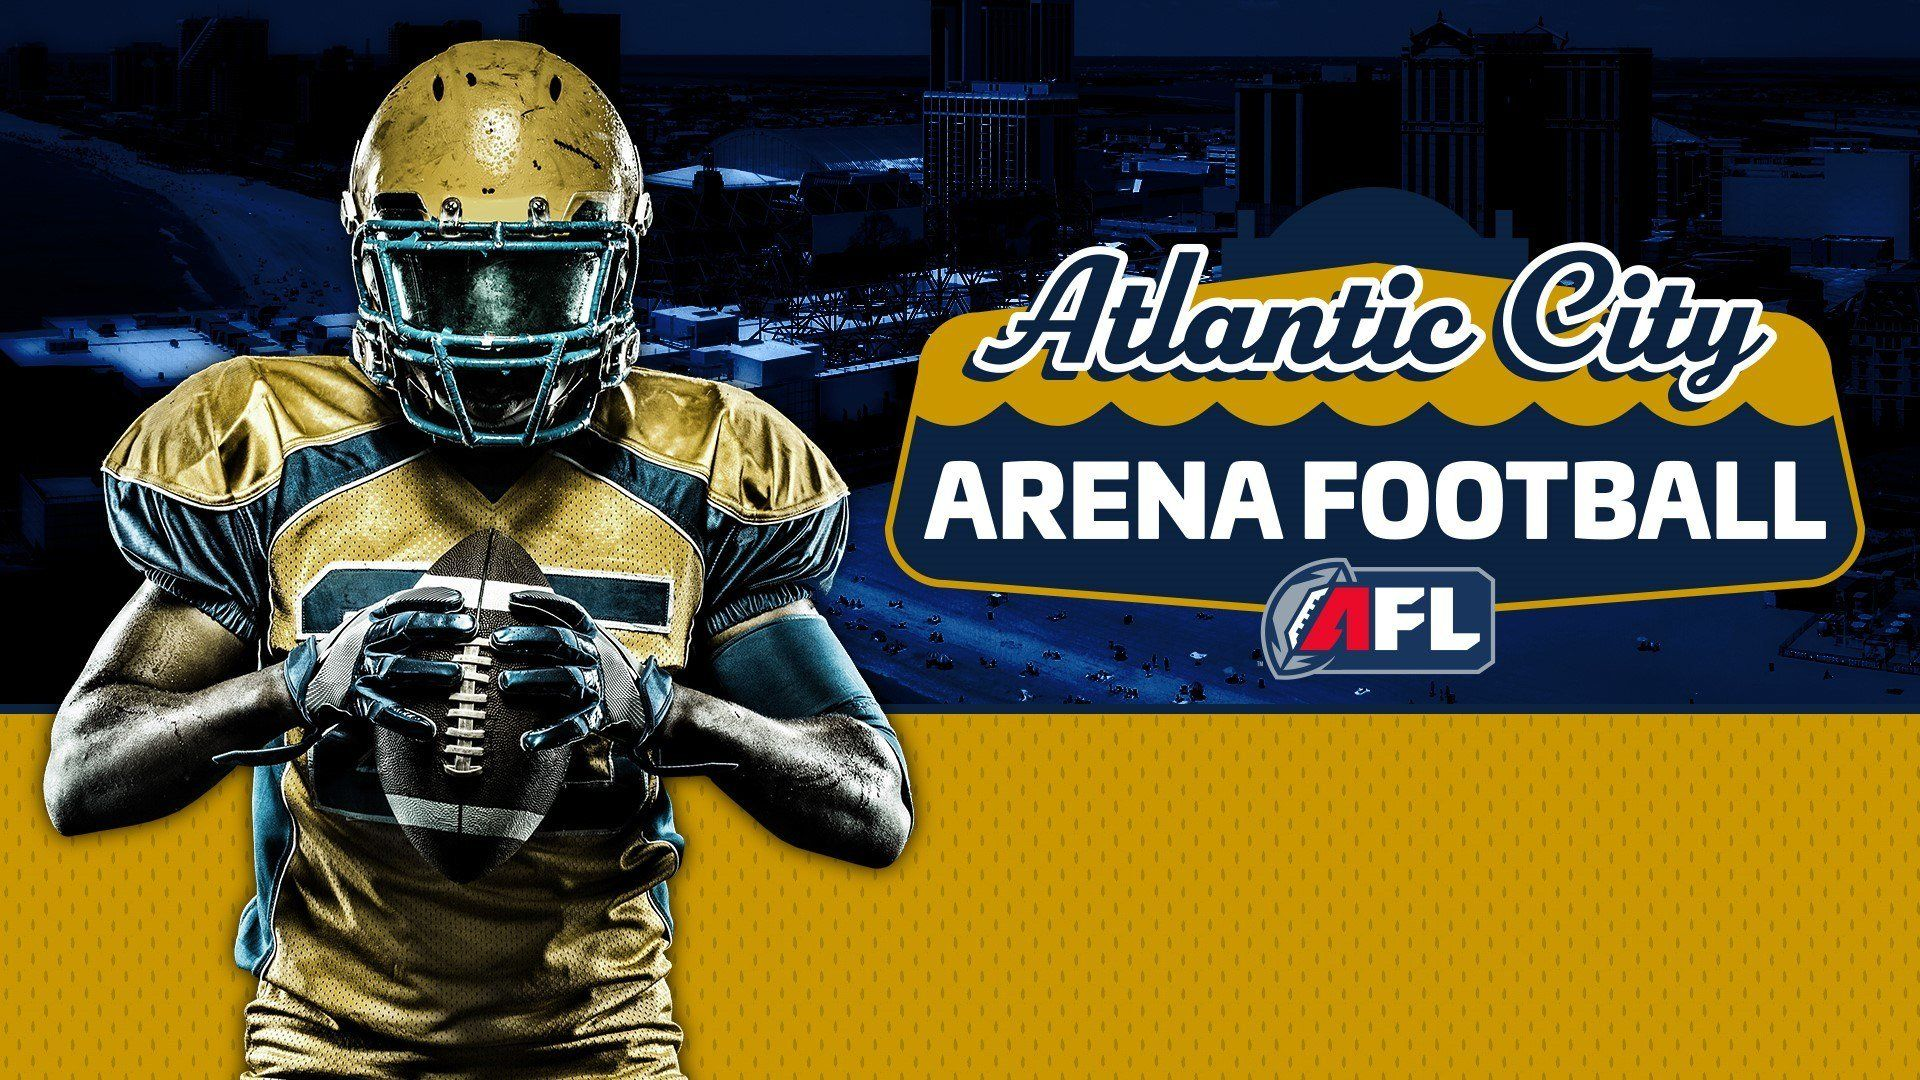 Arena Football League Approves Atlantic City Expansion Team Will Play Inside Boardwalk Hall Arena Football Football League Football